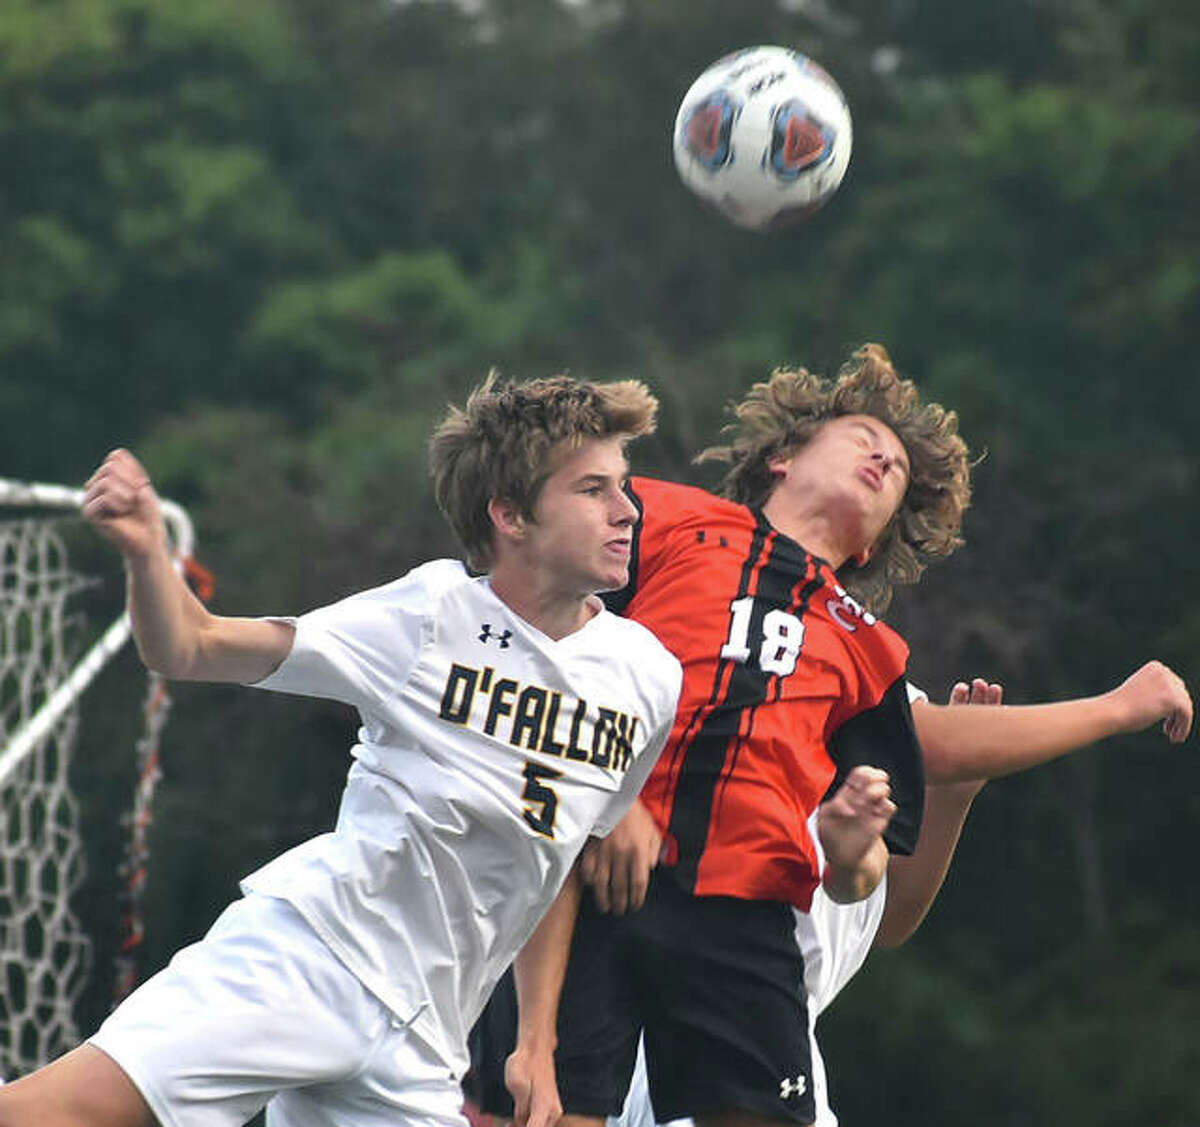 Edwardsville's Troy Chenault, right, challenges O'Fallon's Tyler Howe for a ball in the first half of Friday's Southwestern Conference game in Edwardsville.